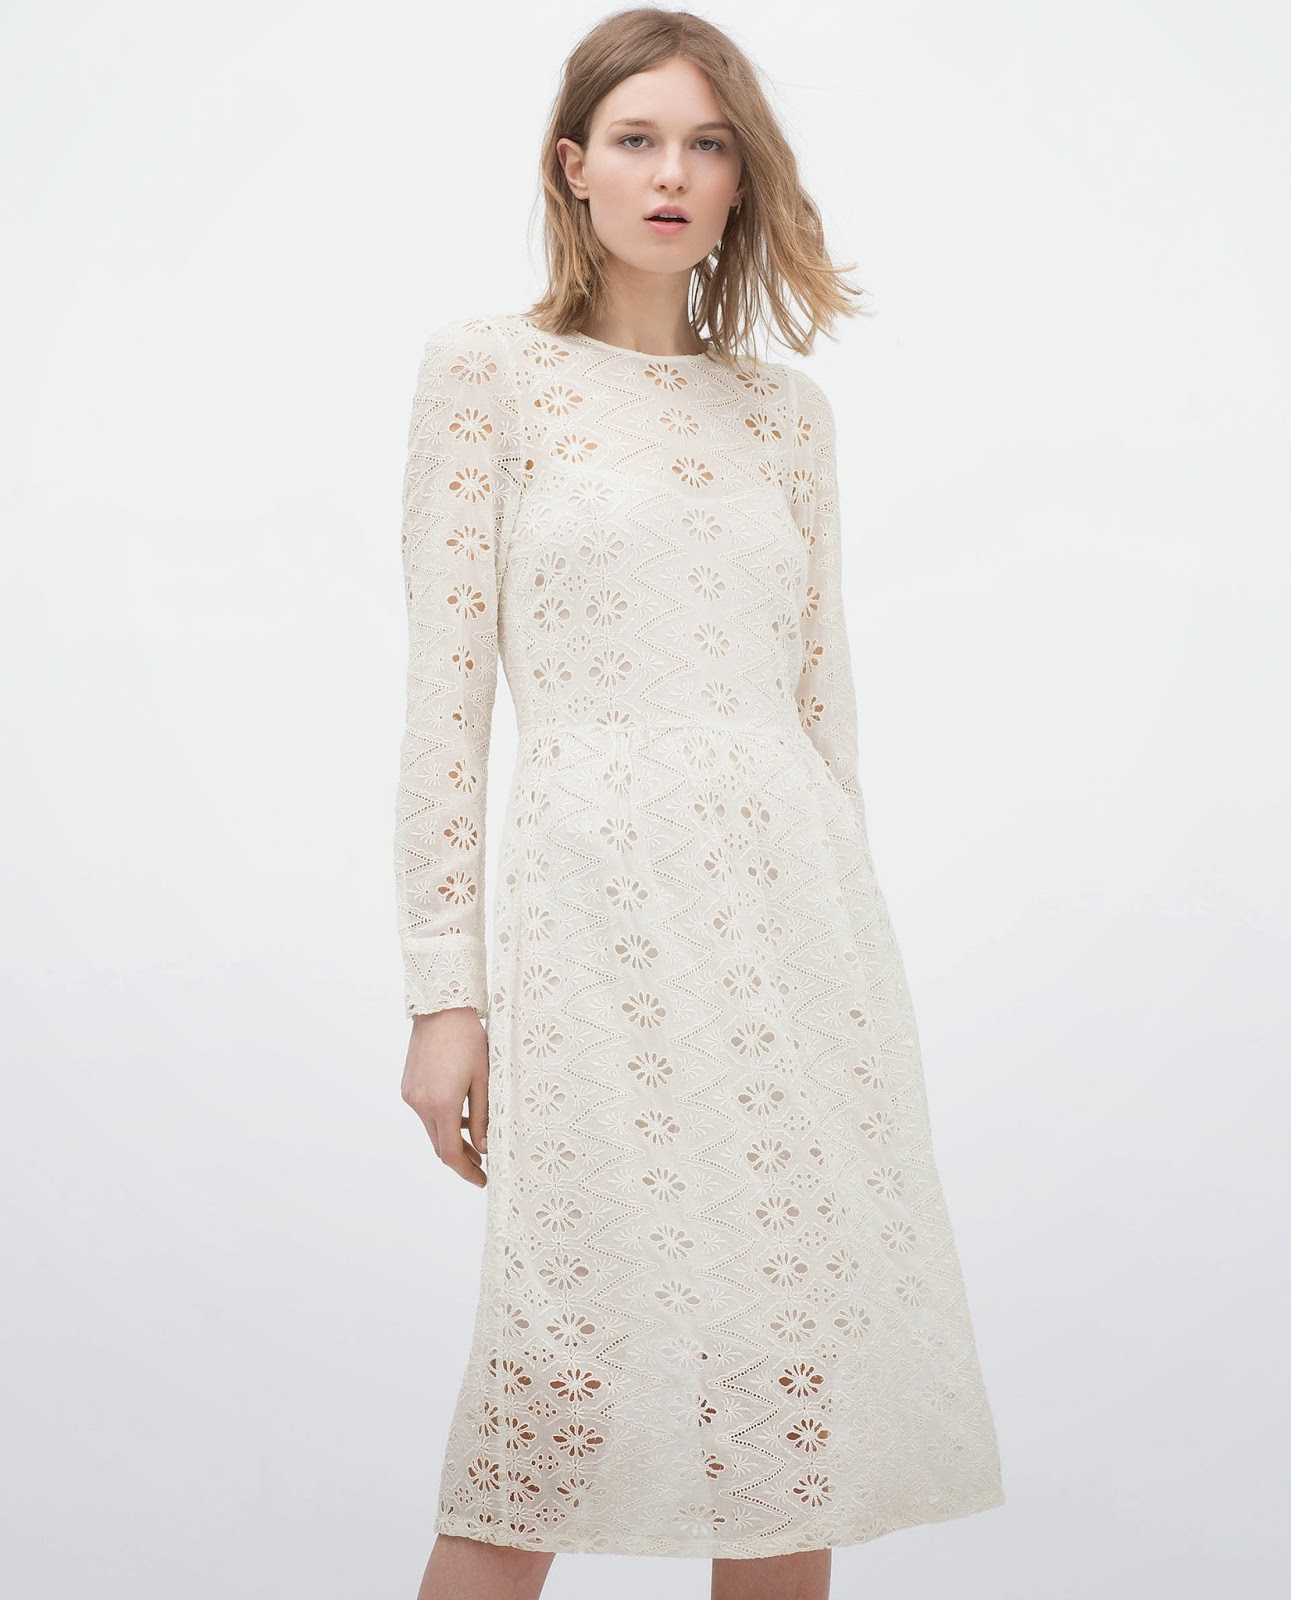 zara white long sleeve dress